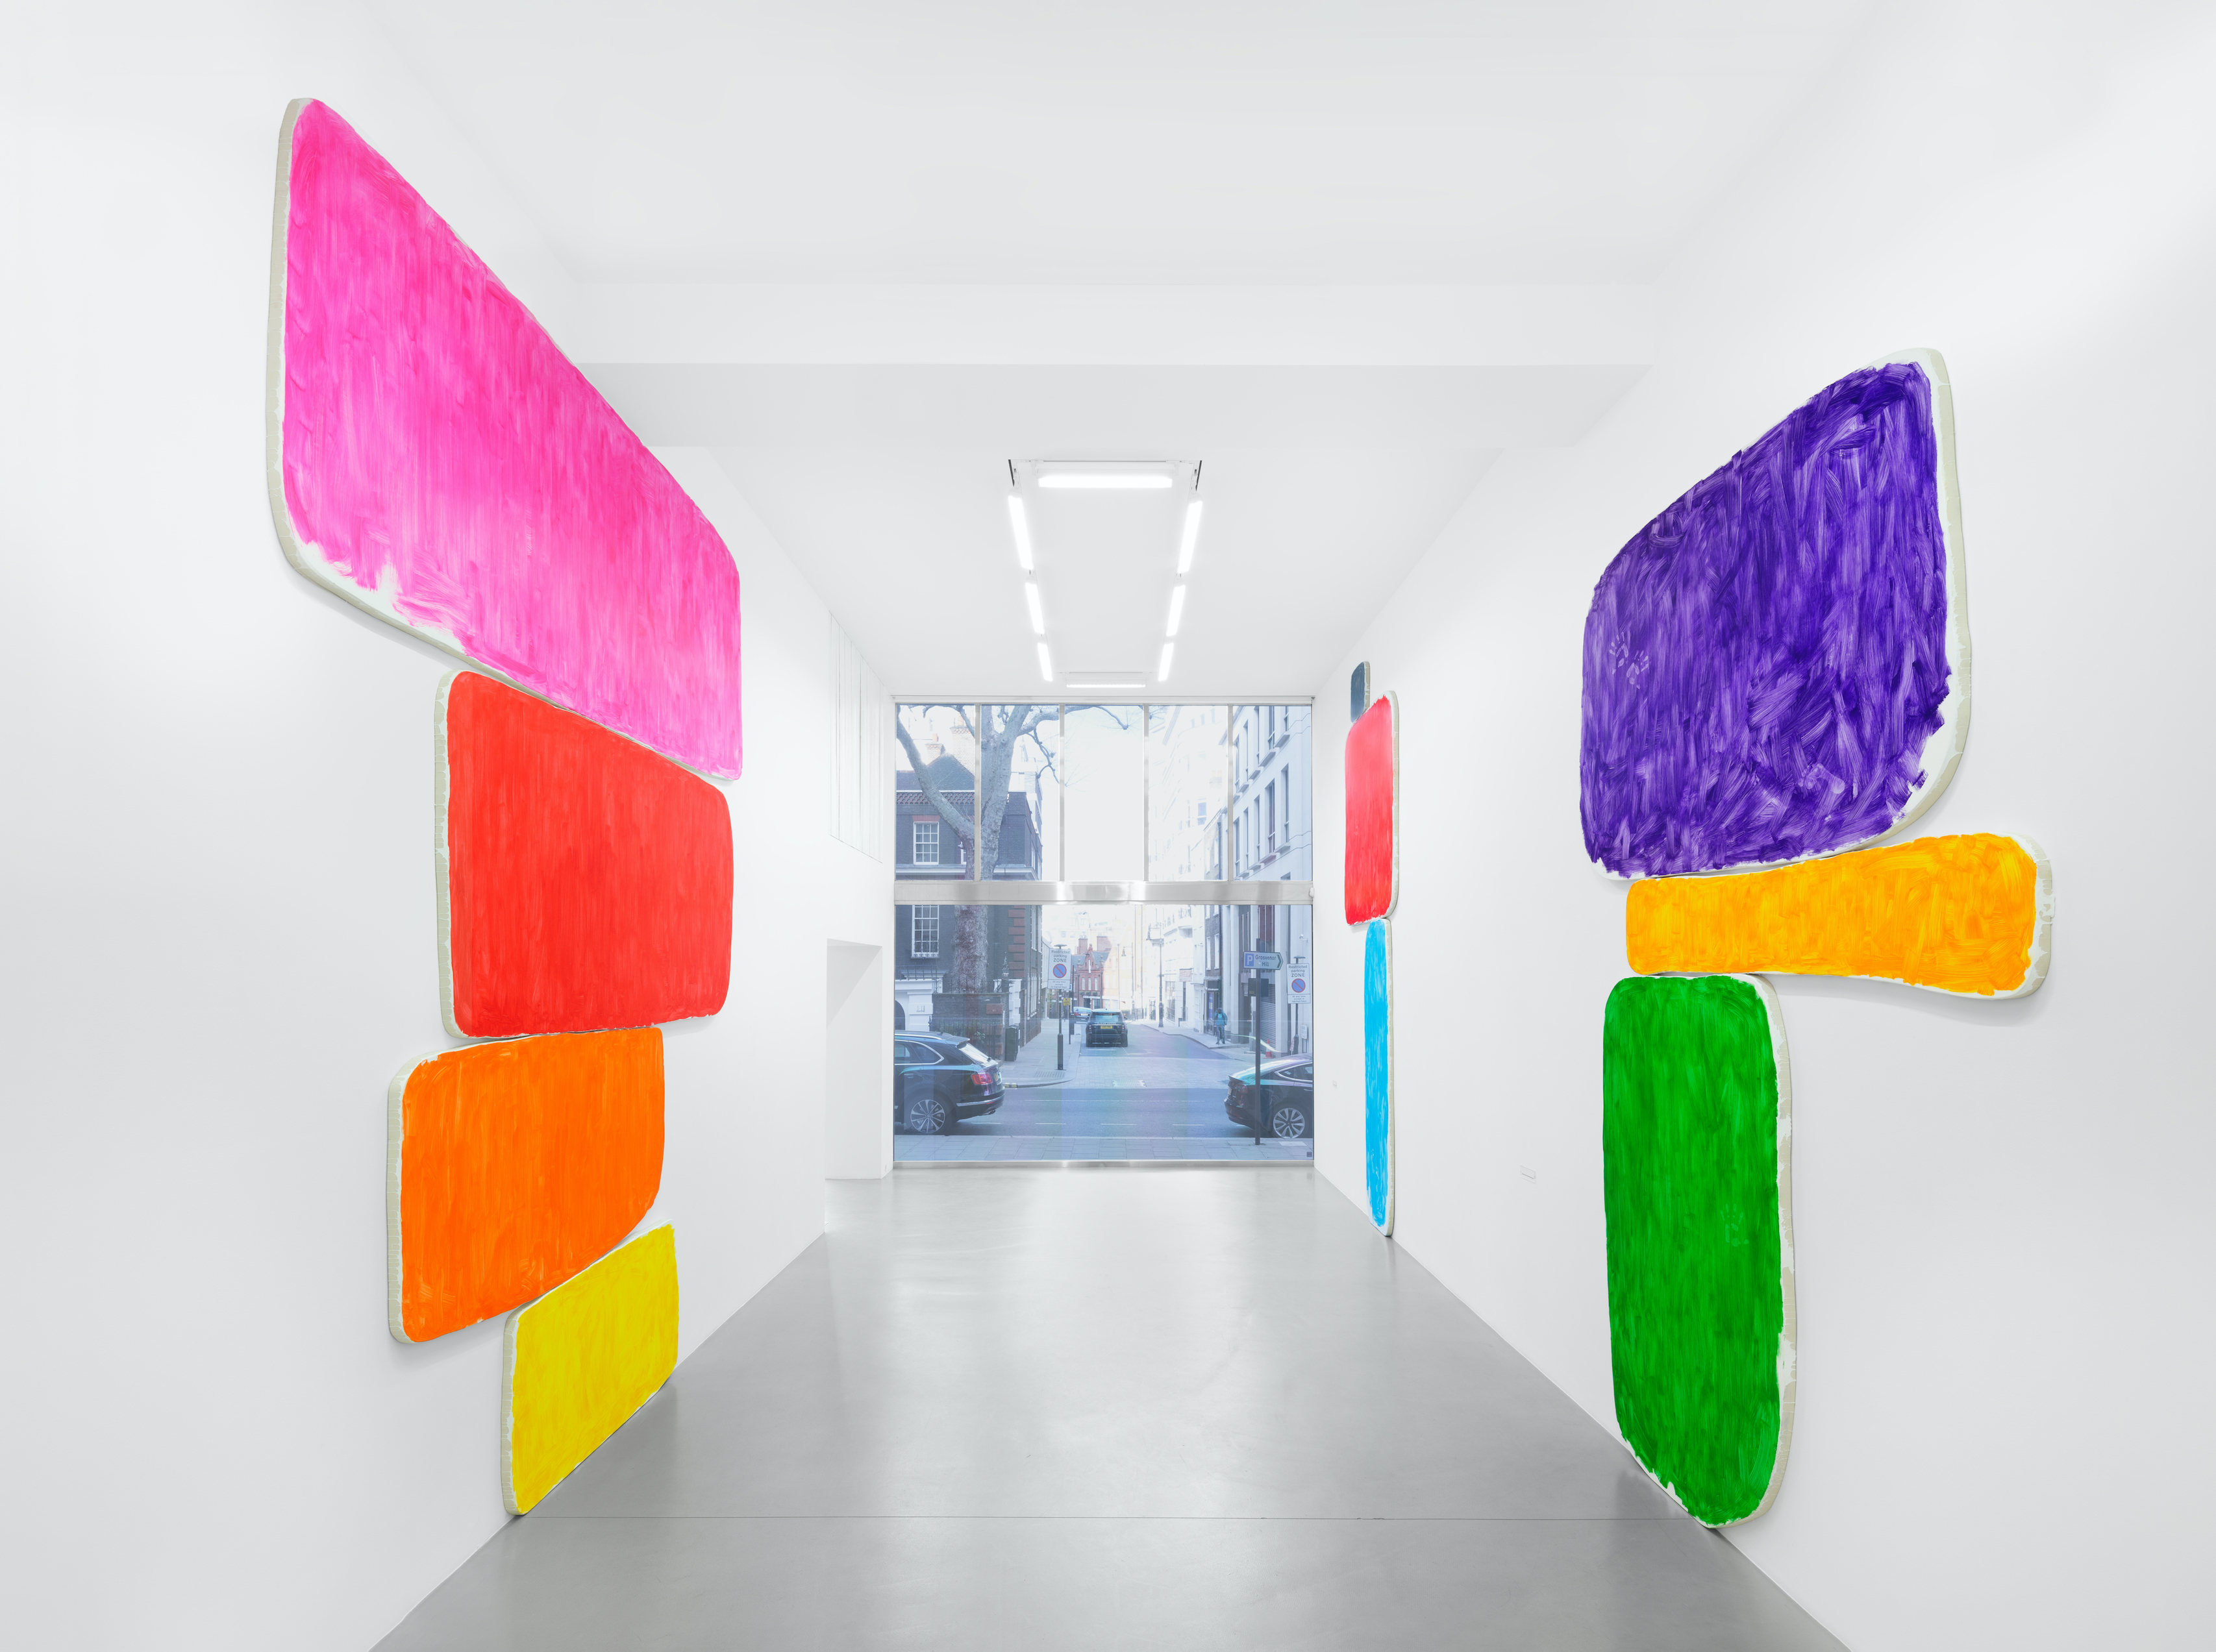 Installation view, Ugo Rondinone, a sky . a sea . distant mountains . horses . spring . at Sadie Coles HQ, 1 Davies Street, London, 12 April - 22 May 2021 Credit: © Ugo Rondinone, courtesy Sadie Coles HQ, London. Photo: Eva Herzog